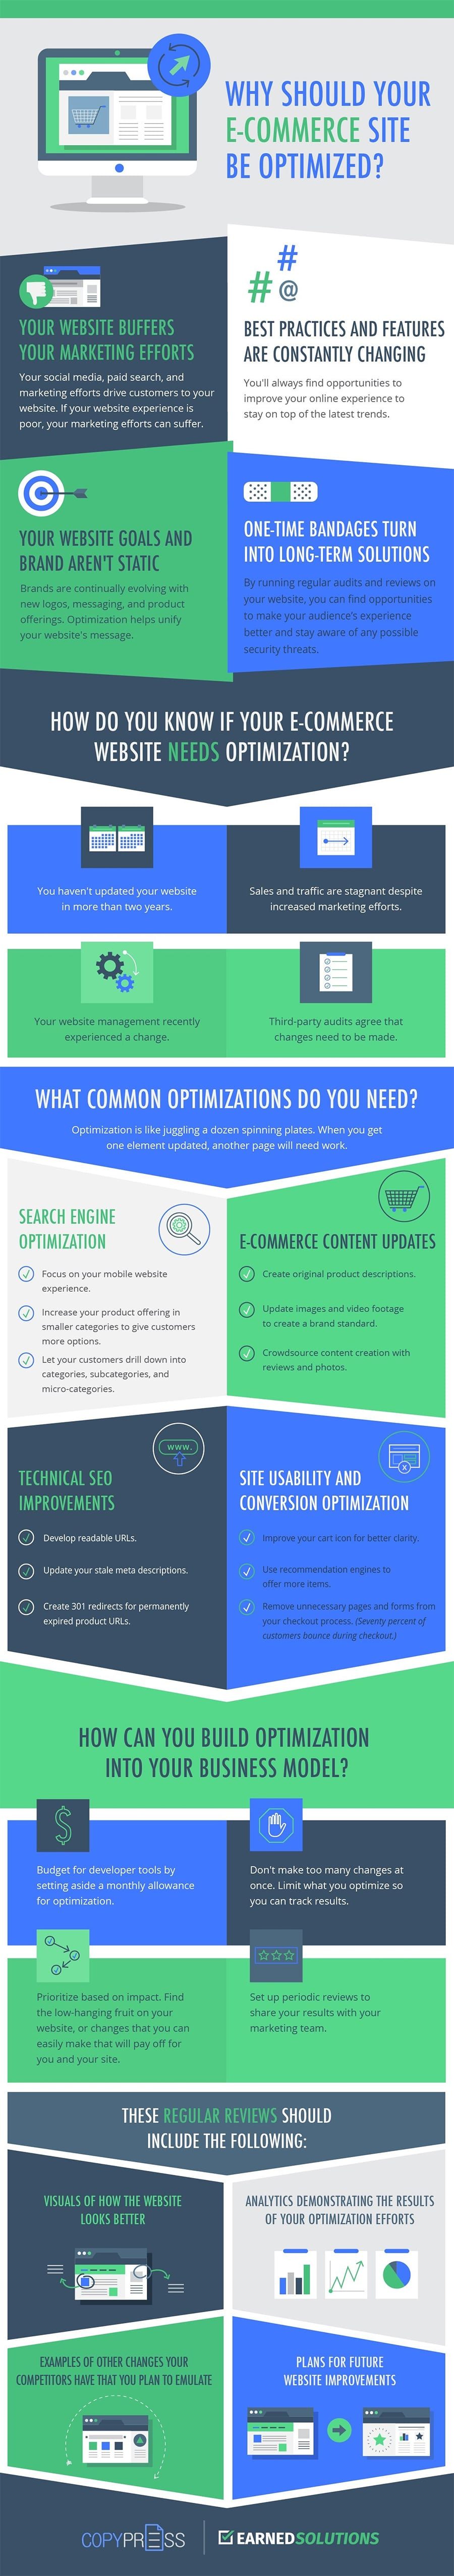 eCommerce Website Optimization: A Complete Guide for Online Store Owners [Infographic]